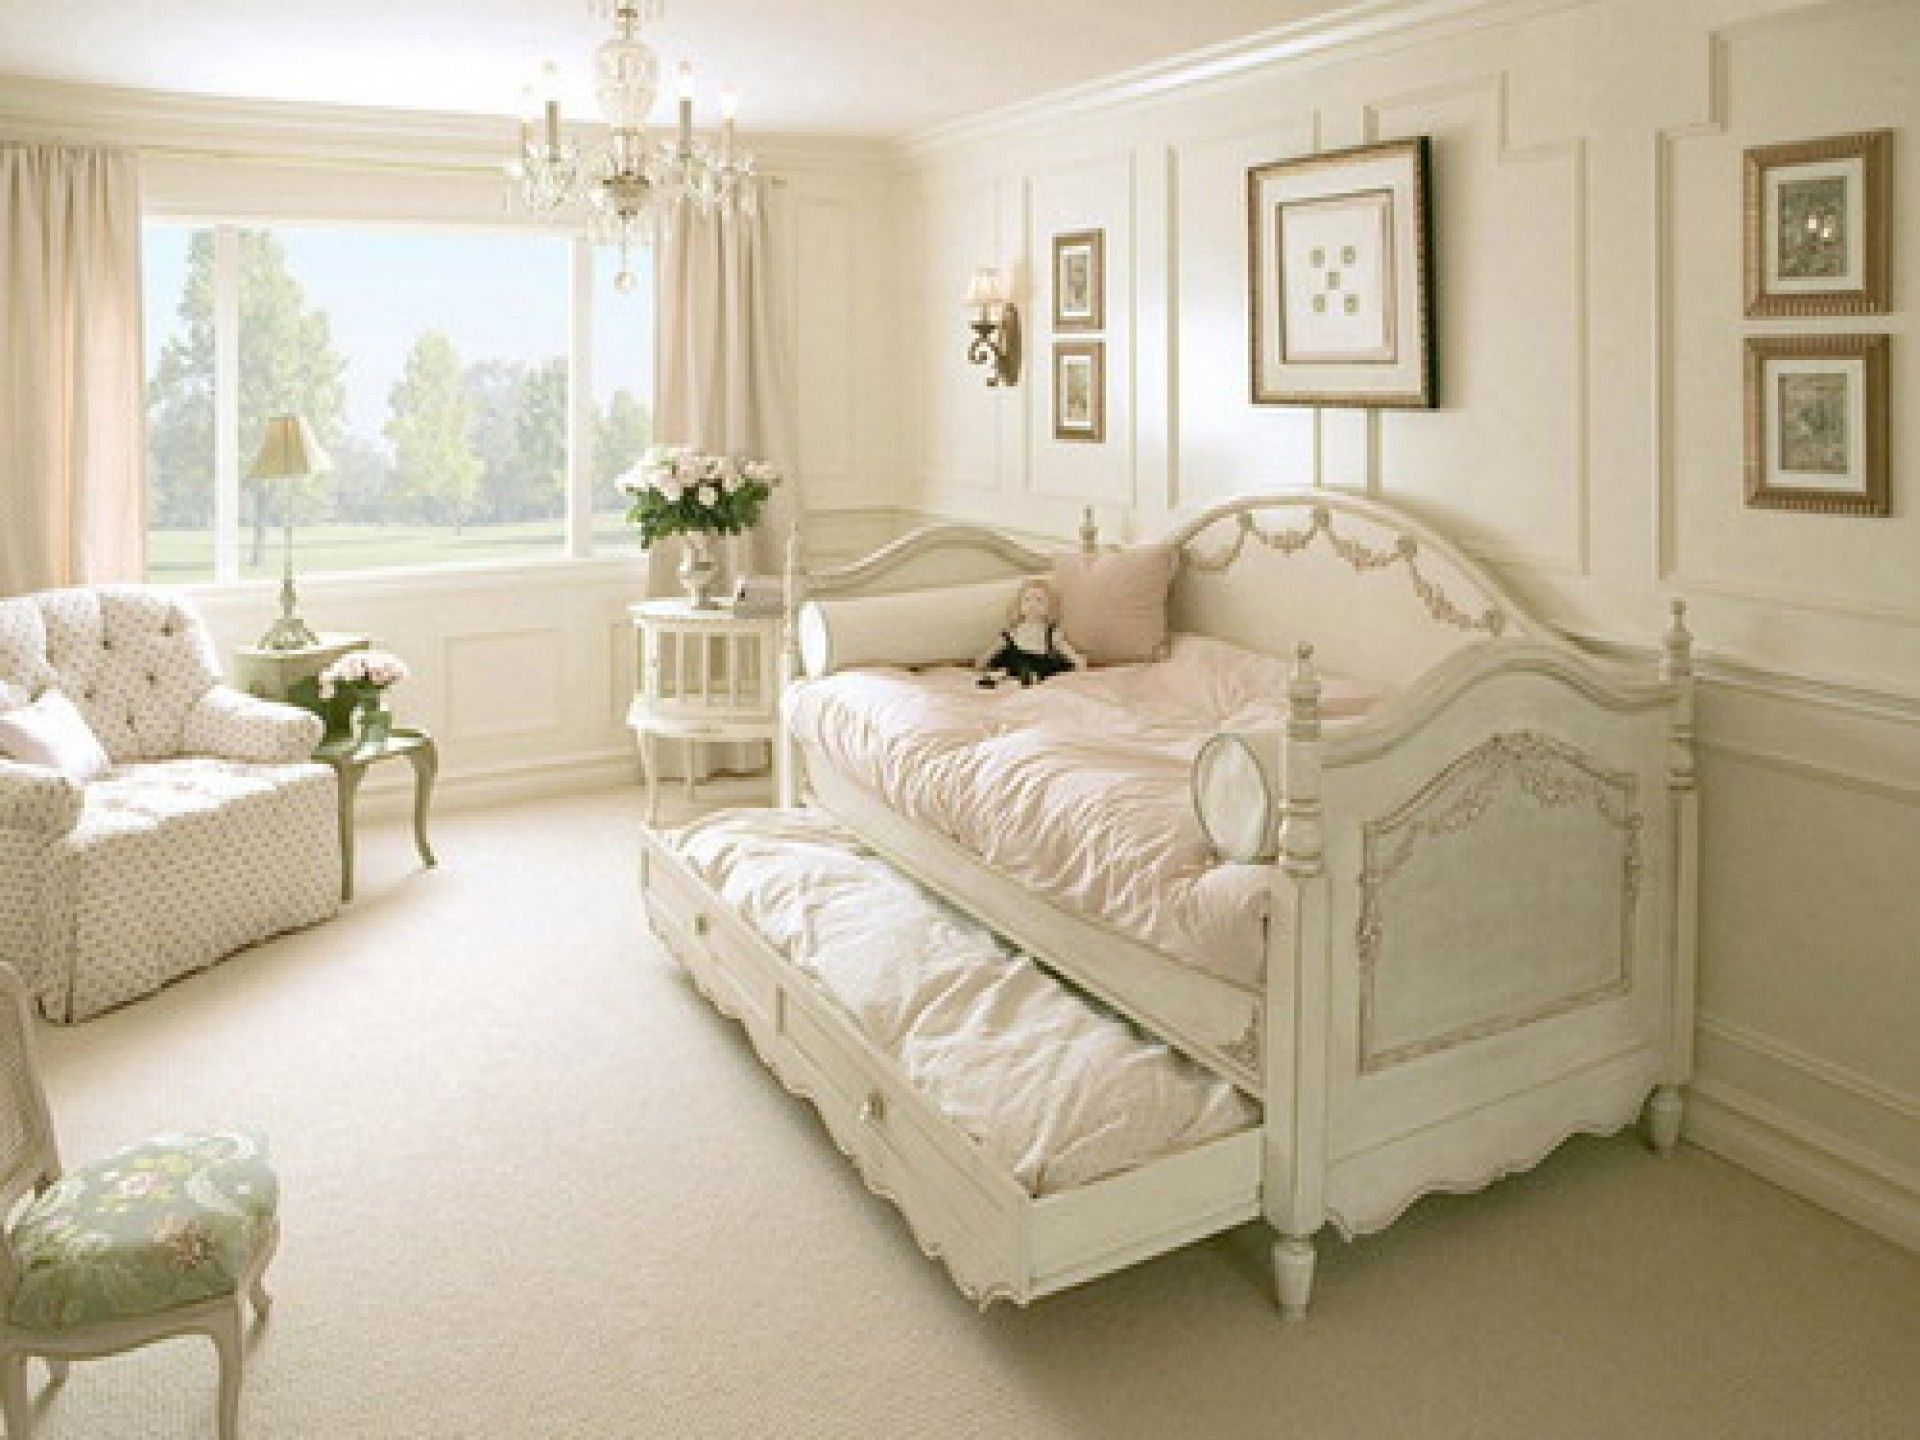 adorable girls day bed bedding hemnes daybed room ideas daybed